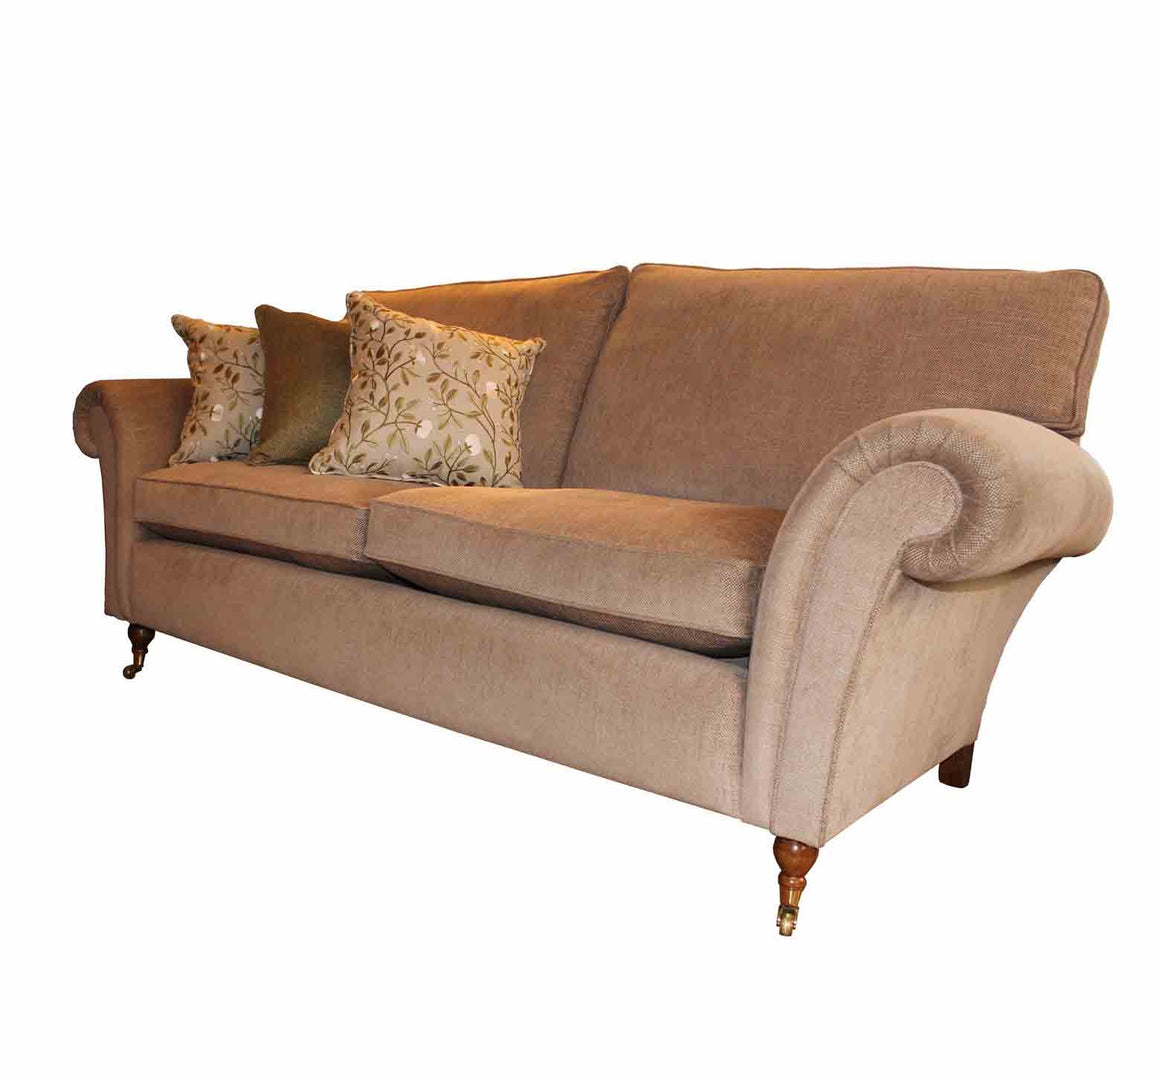 Henley Cushion Back Sofas in Linwood Iona